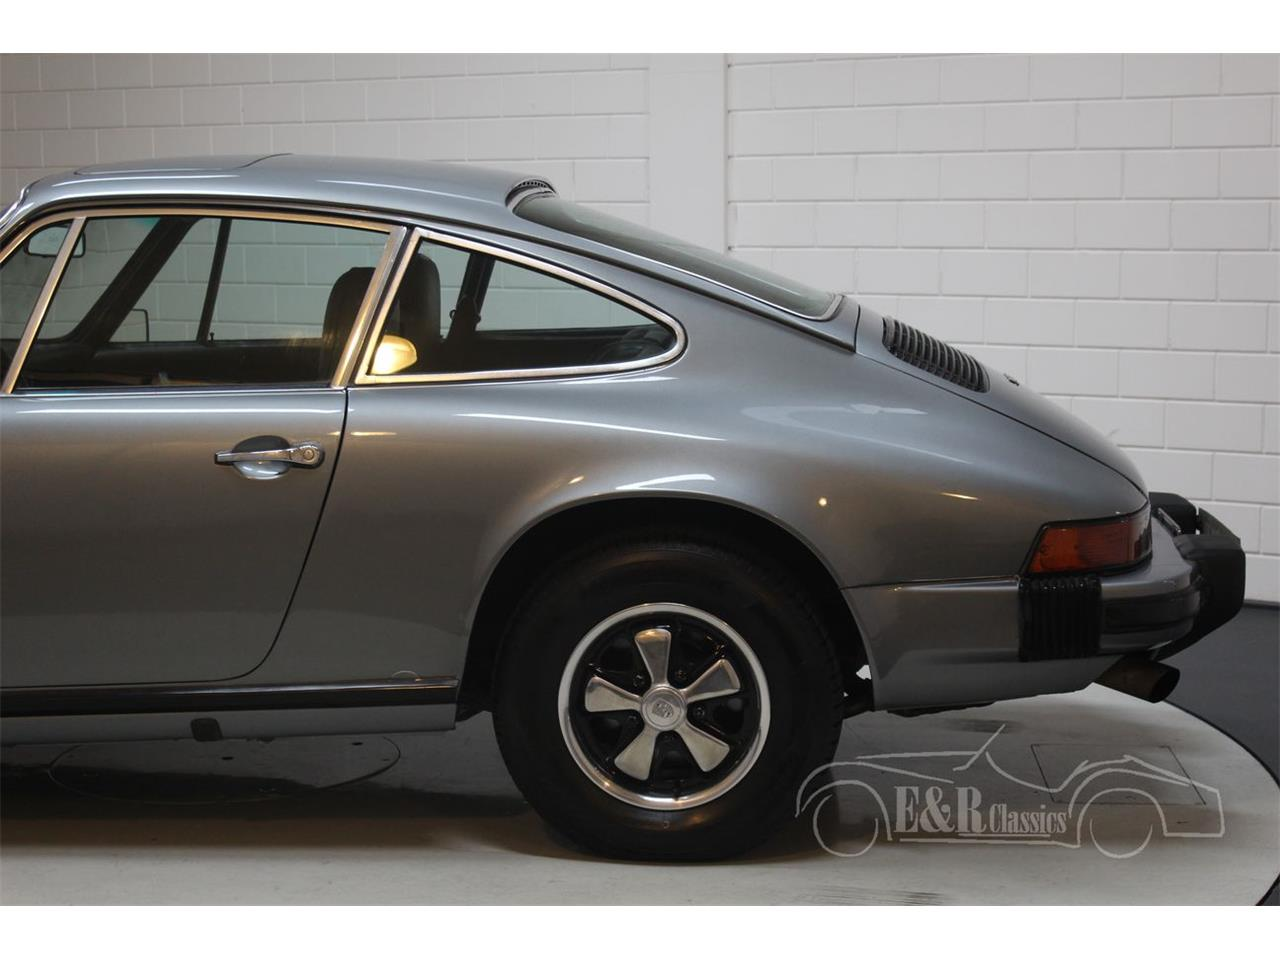 Large Picture of 1976 Porsche 912E located in Noord-Brabant - $44,700.00 Offered by E & R Classics - Q66S